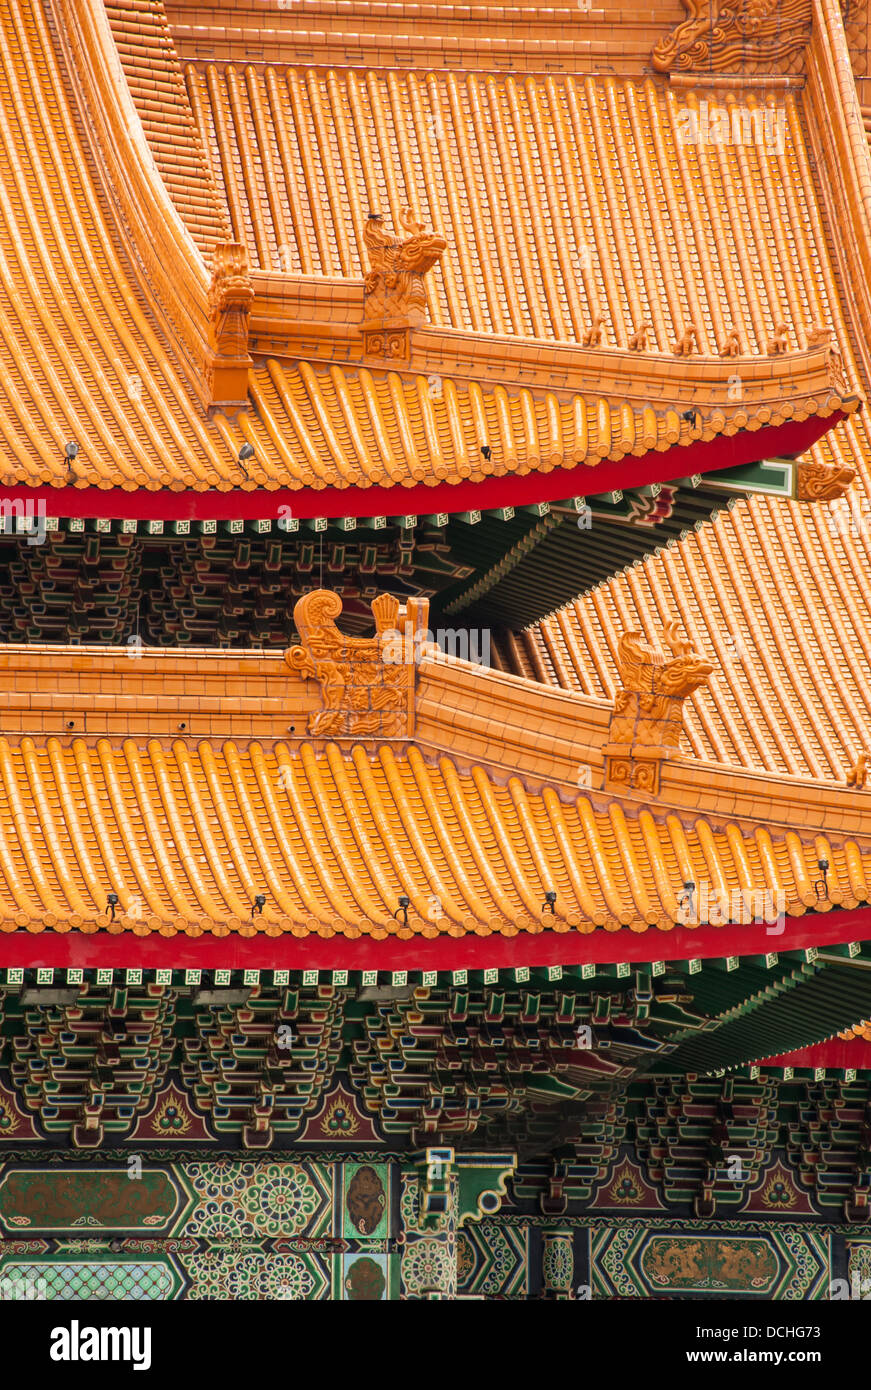 A detail of the ornate roof of the National Concert Hall in Taipei, Taiwan. - Stock Image